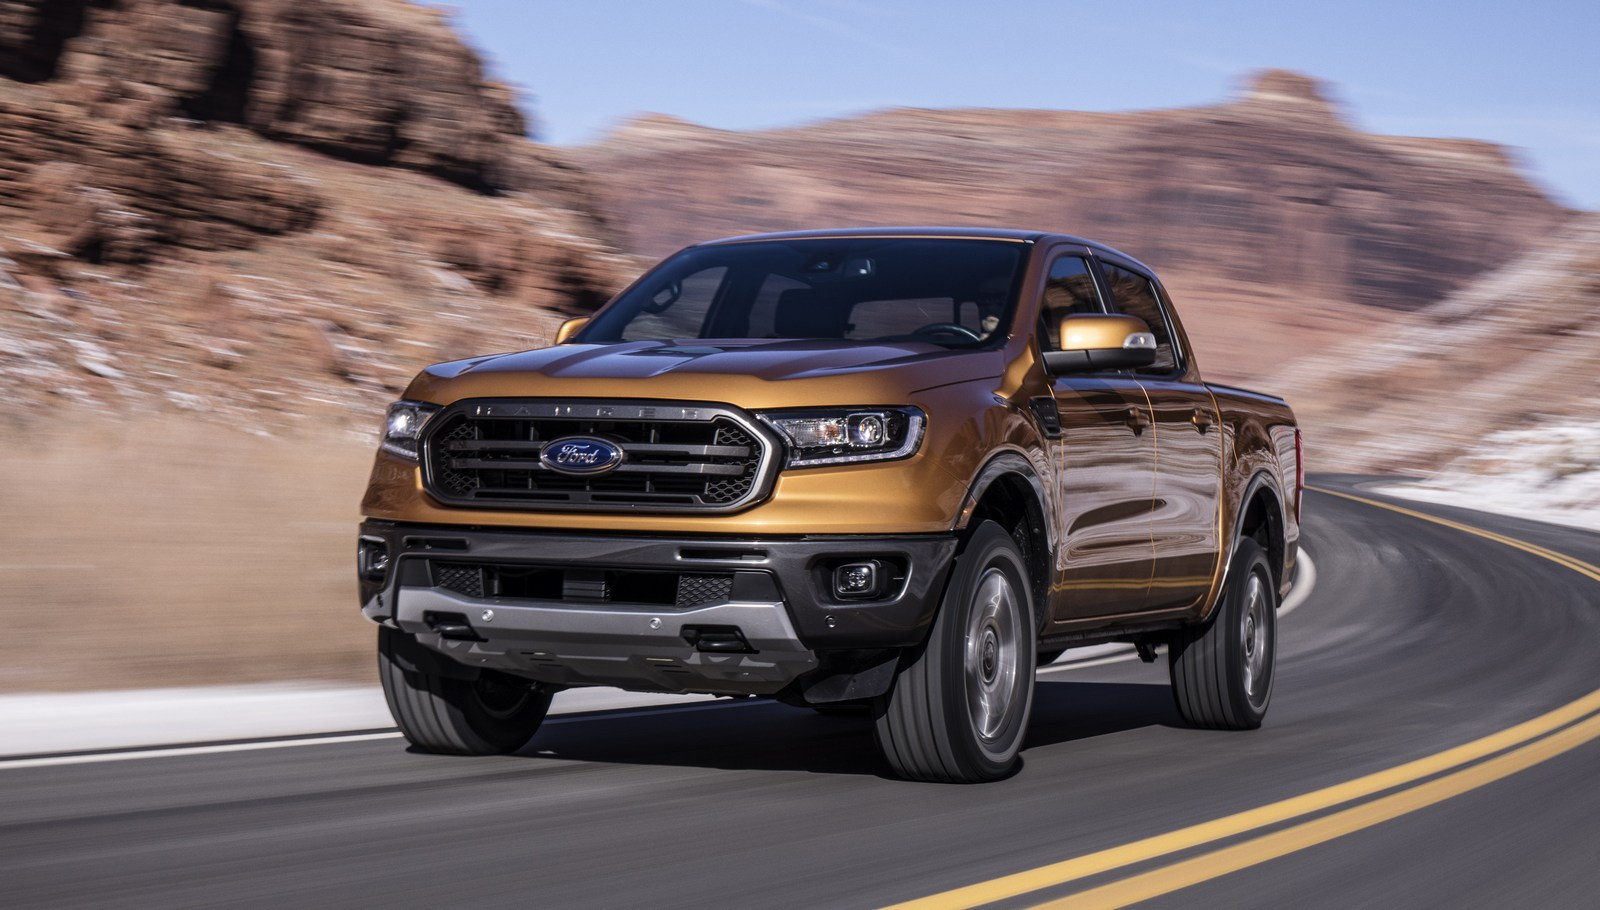 2019 Ford Ranger Engine Tuning: Bully Dog BDX Adds 59